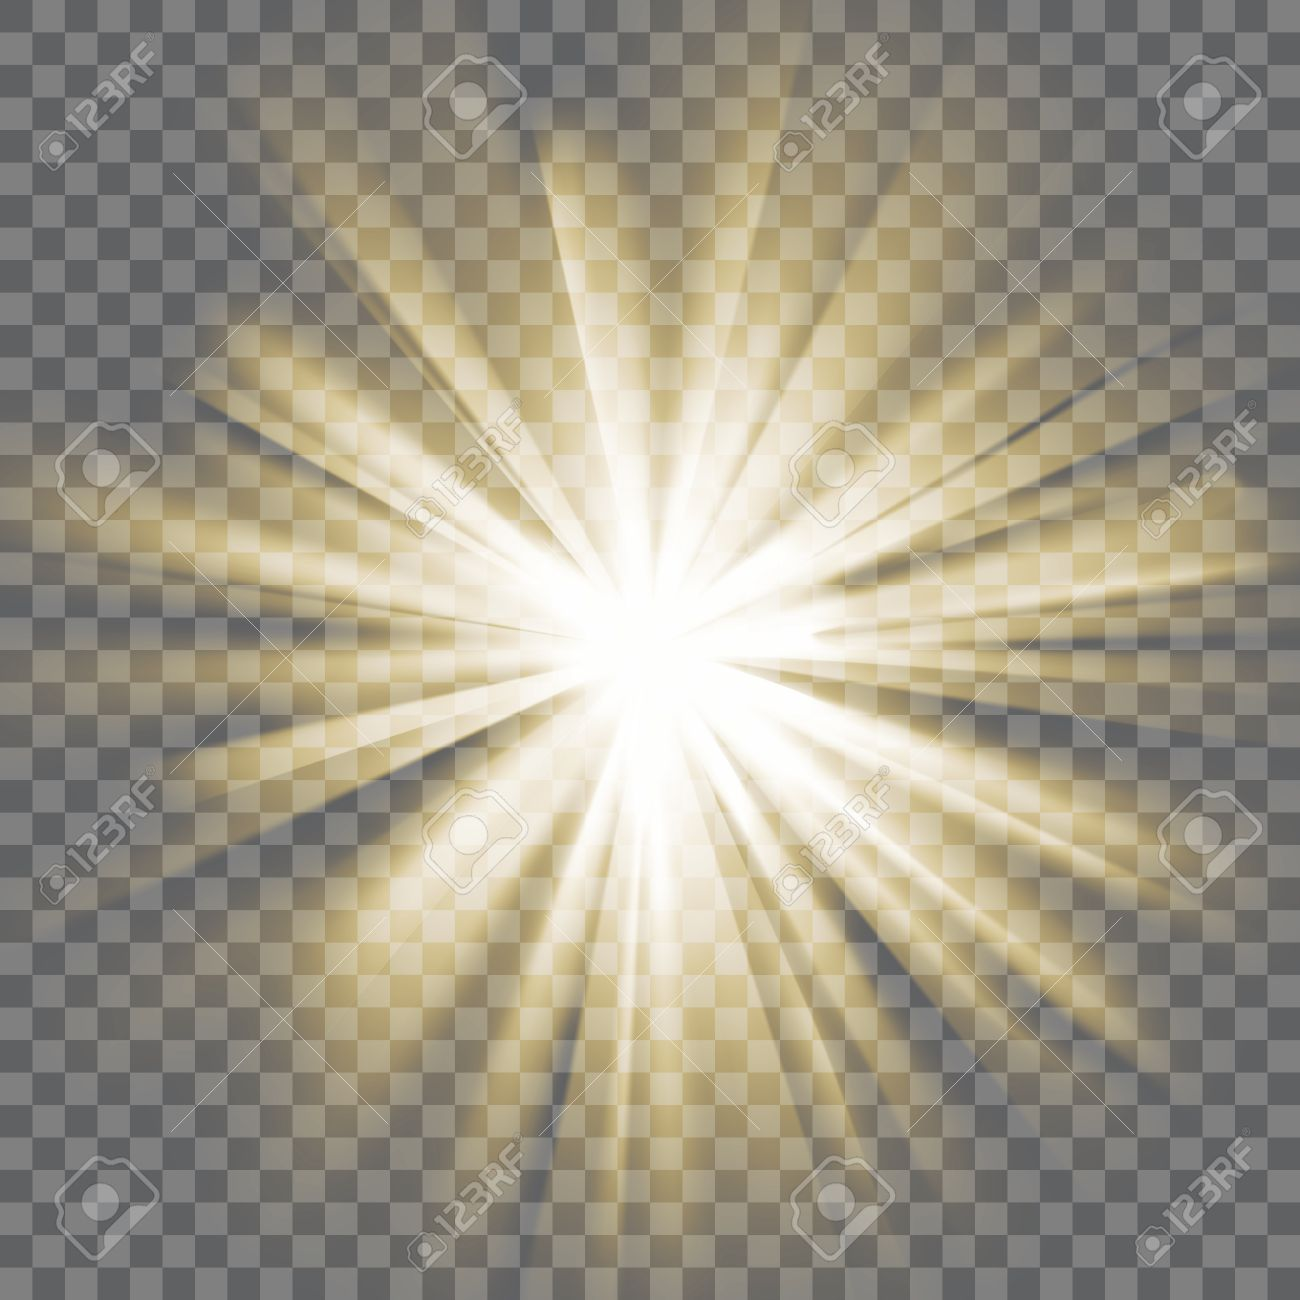 Sun Rays Bursting Explosion Transparent Background Of Light Glaring Effect With Transparency Abstract Glowing